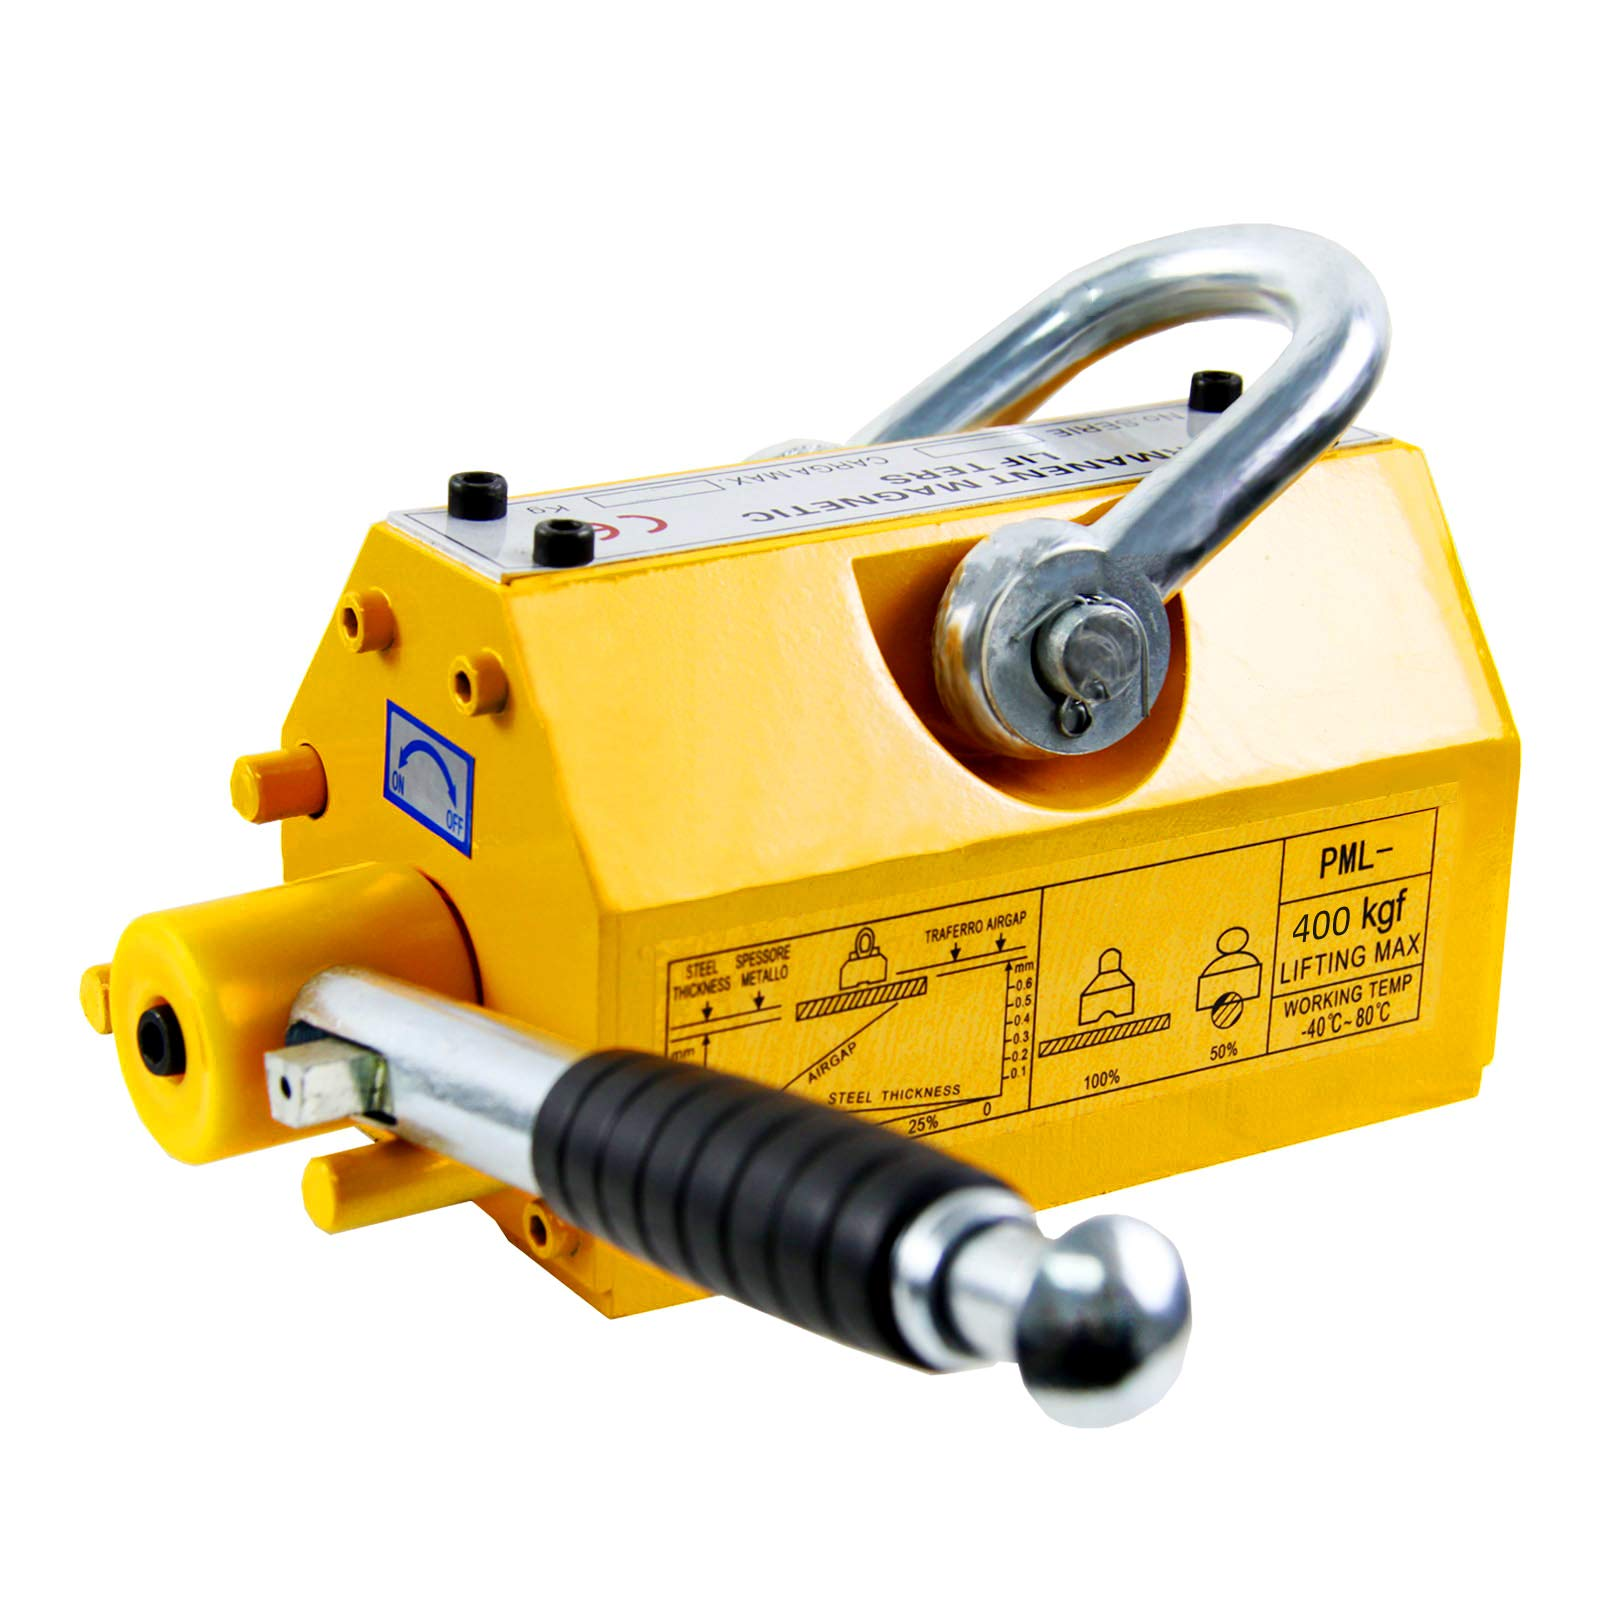 HONYTA Lifting Magnet with Release,880 Lbs Pulling Force - Permanent Lift Magnets,Heavy Duty - Steel Magnetic Lifter,Neodymium - for Shop Crane,Hoist,Block, Board